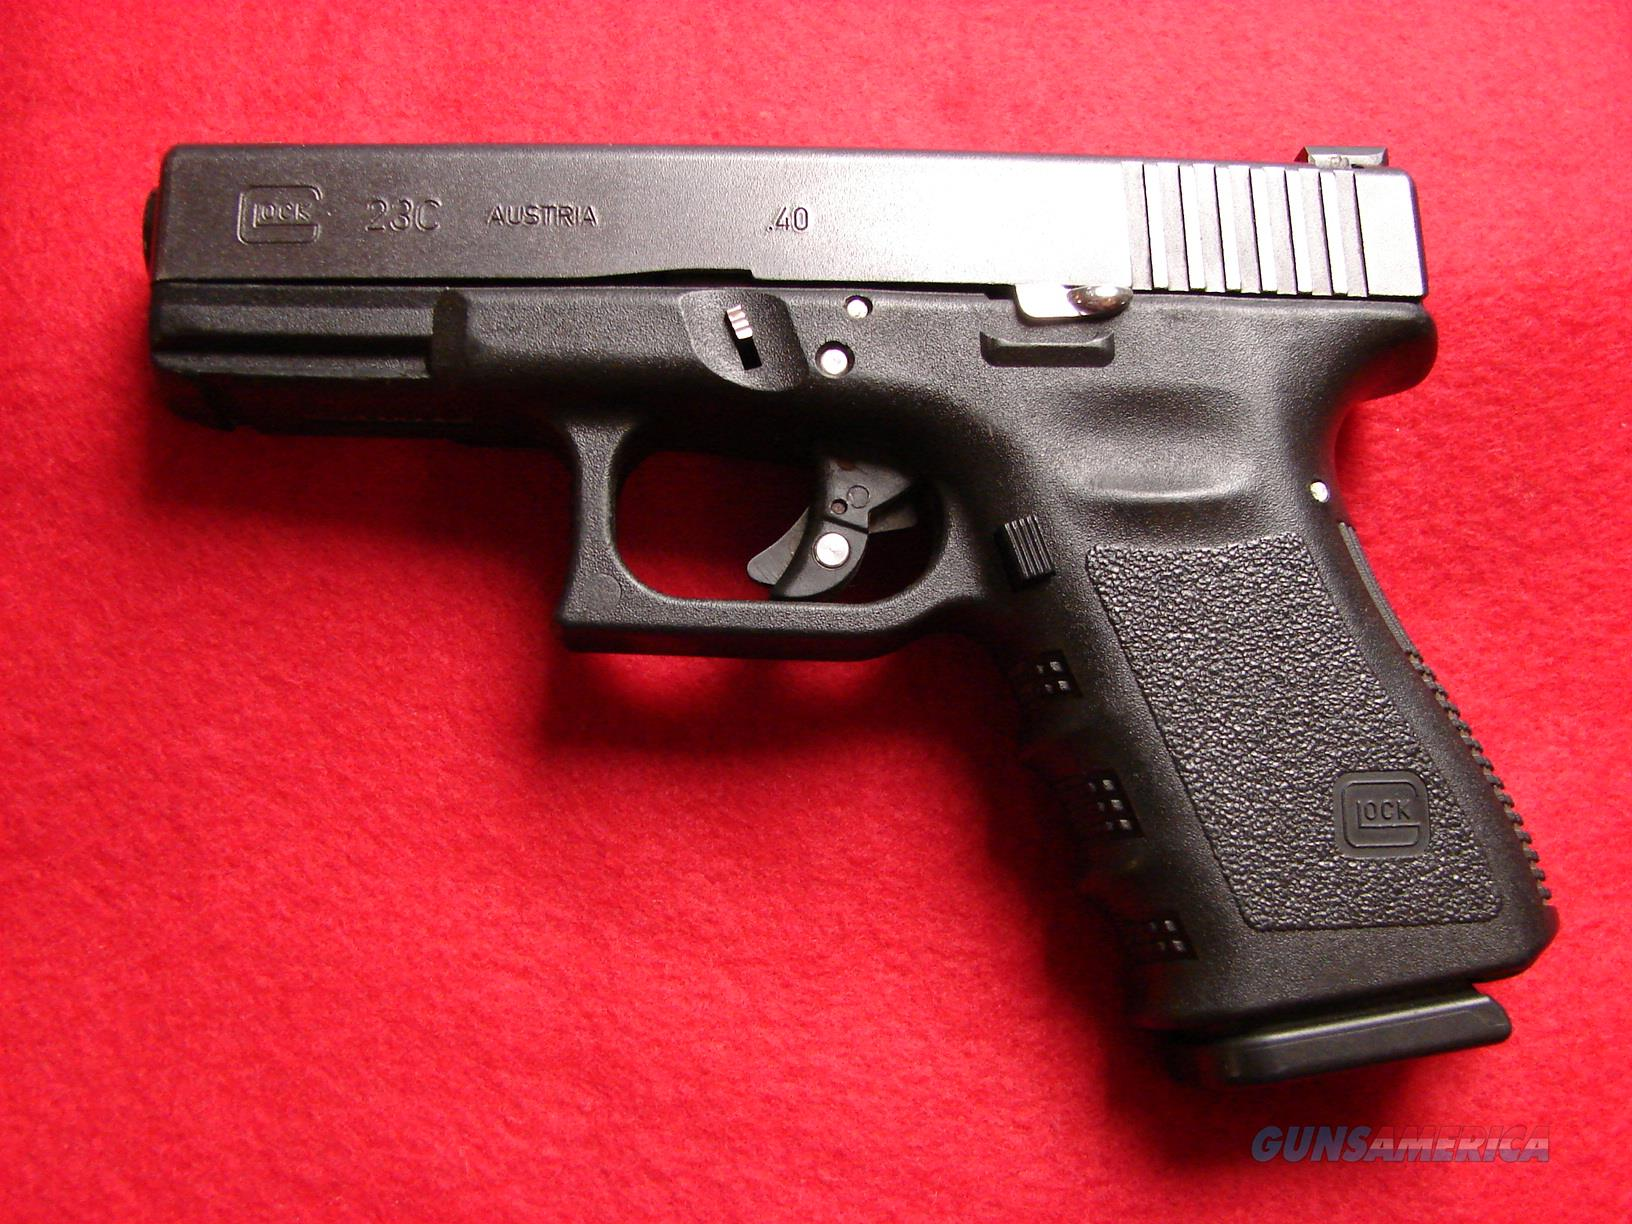 Glock Model 23C - 40 S&W with Factory Cut Compensated Barrel and Slide - Used  Guns > Pistols > Glock Pistols > 23